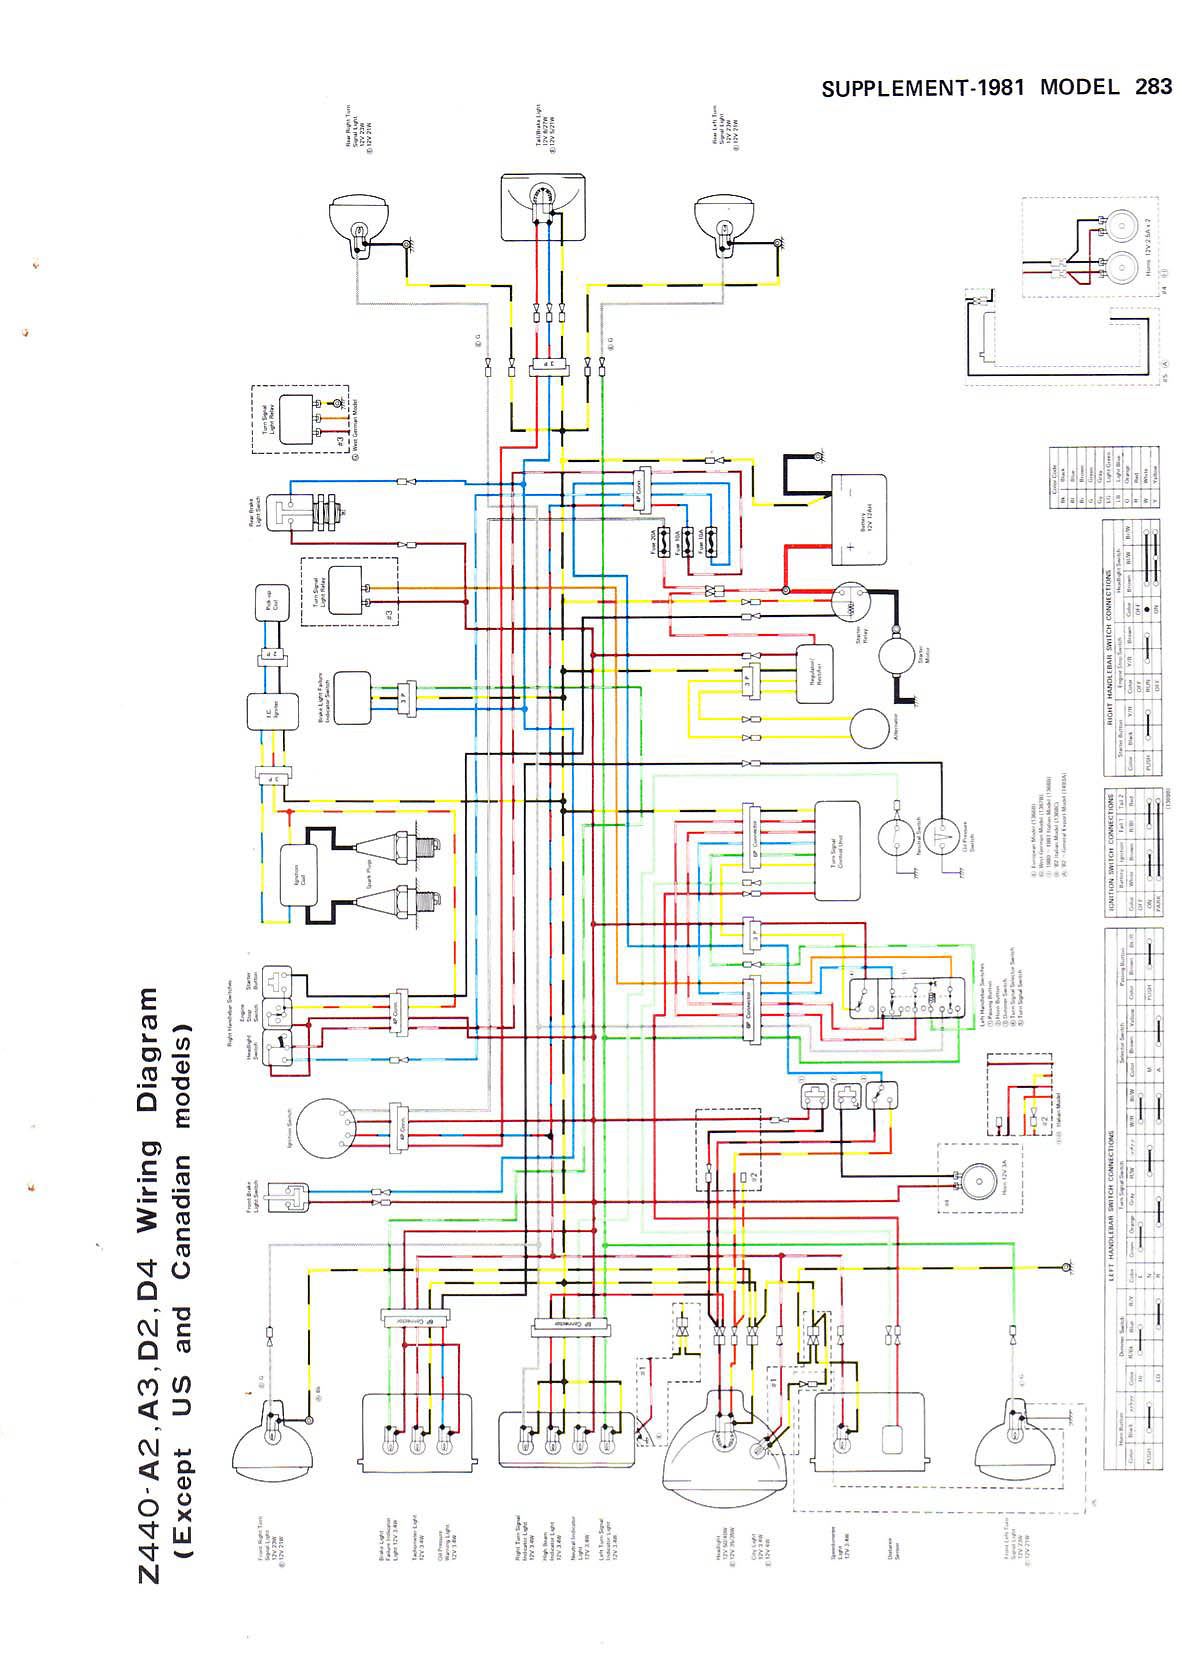 Kawasaki KZ 440 %2780 a %2782 Service Manual_Page_280 index of kz440 wiring diagrams 1981 kawasaki 440 ltd wiring diagram at bayanpartner.co